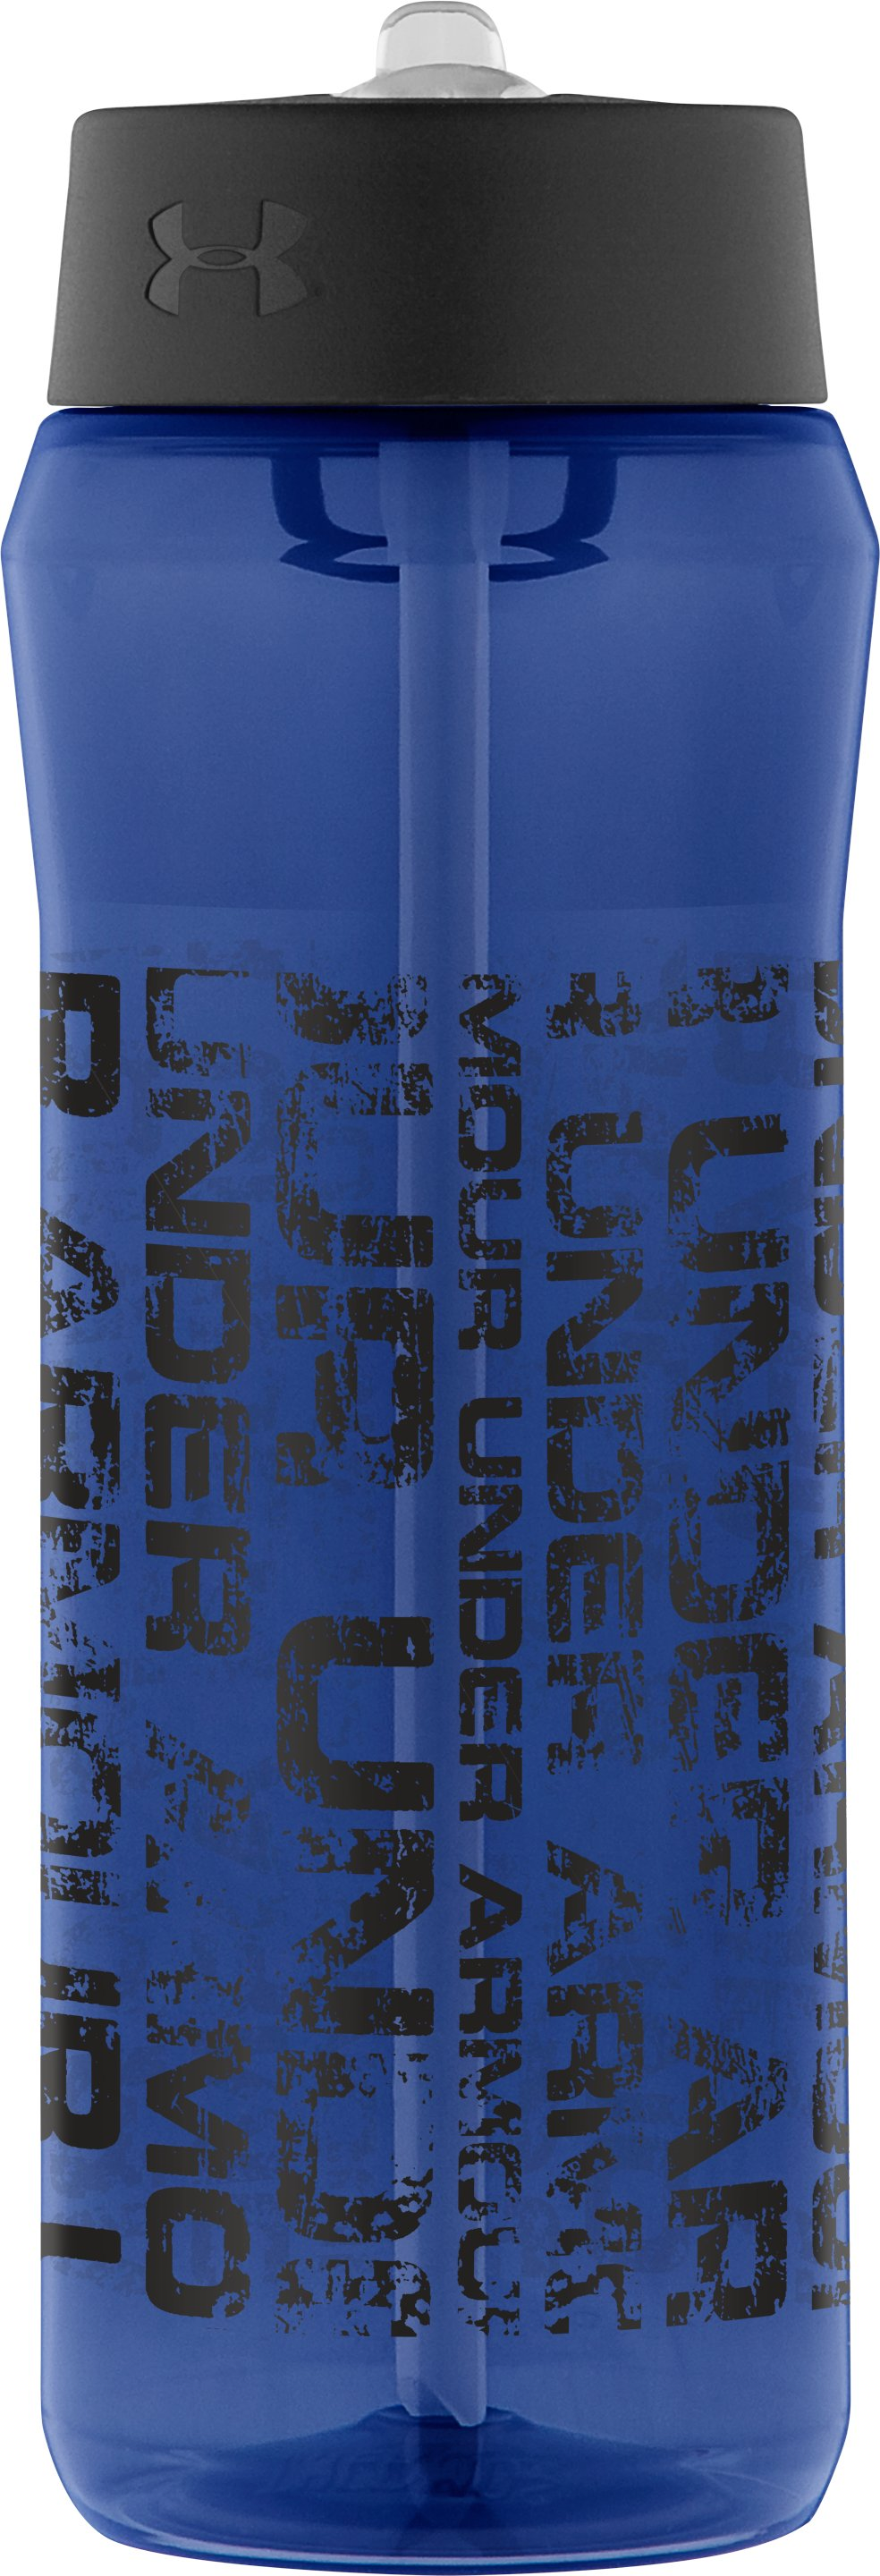 Distressed 24 oz. Tritan Bottle with Straw Top, Midnight Navy, zoomed image